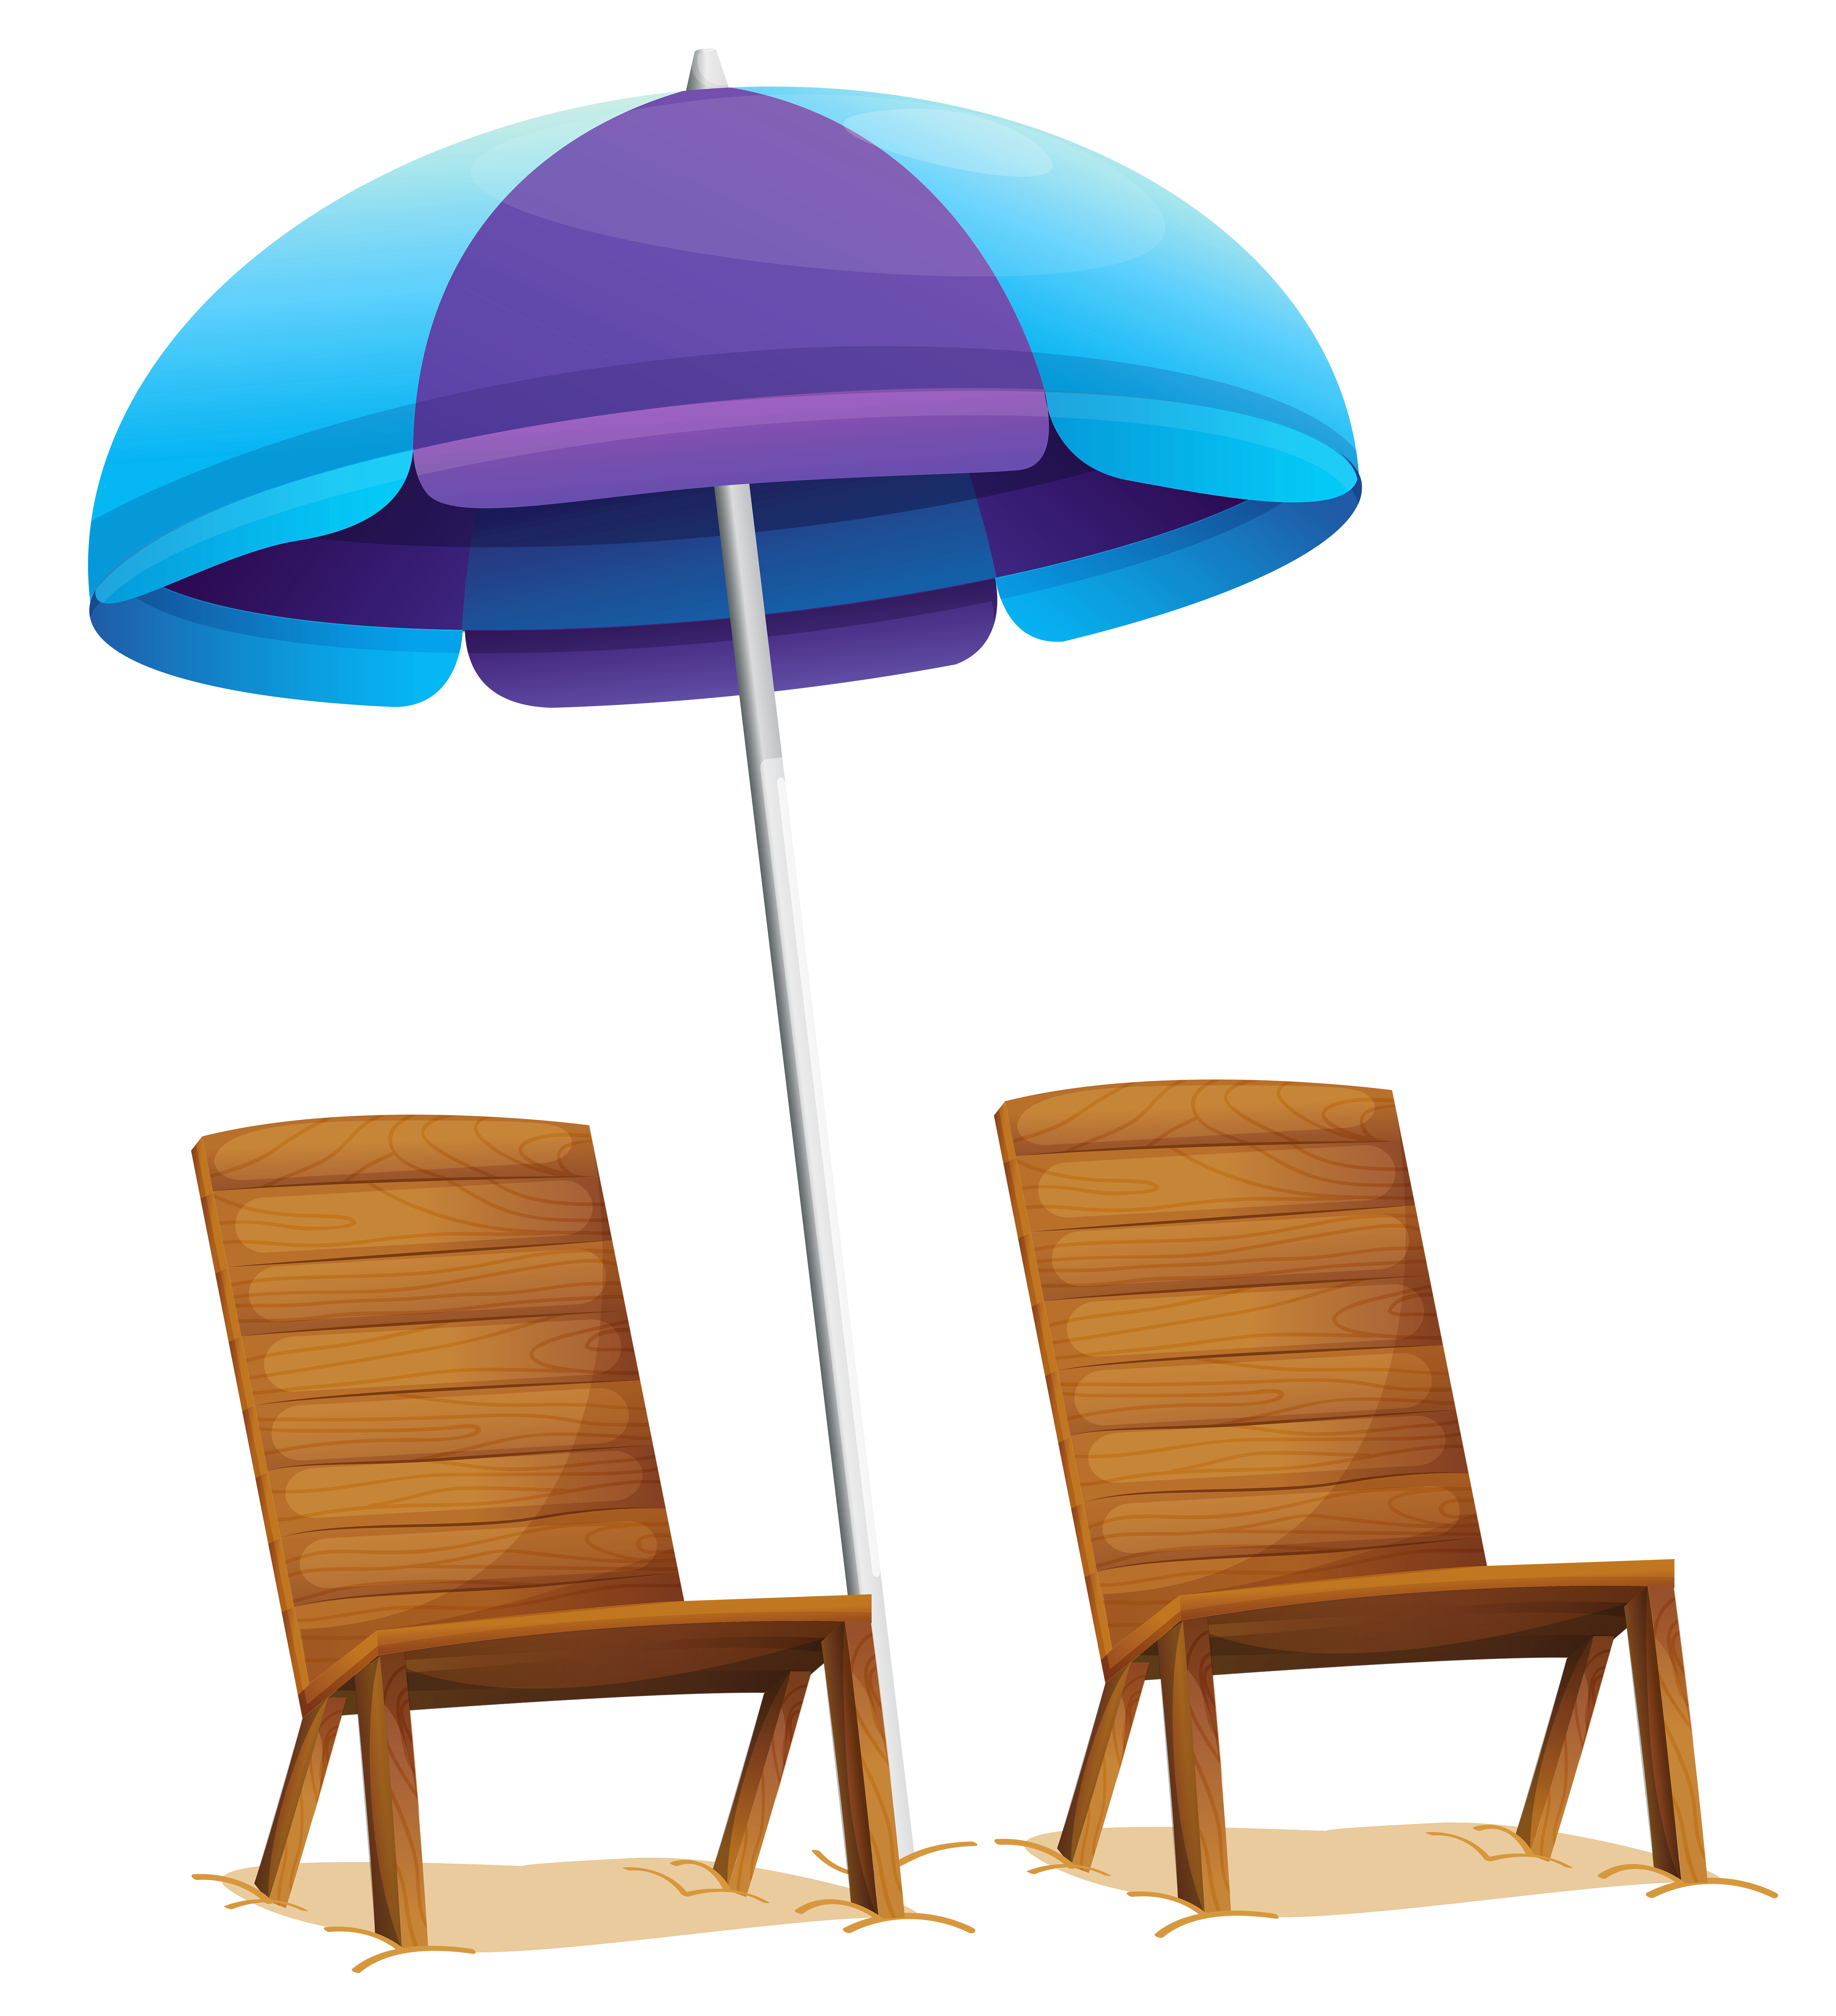 4767x5234 Transparent Beach Umbrella And Chairs Png Clipartu200b Gallery